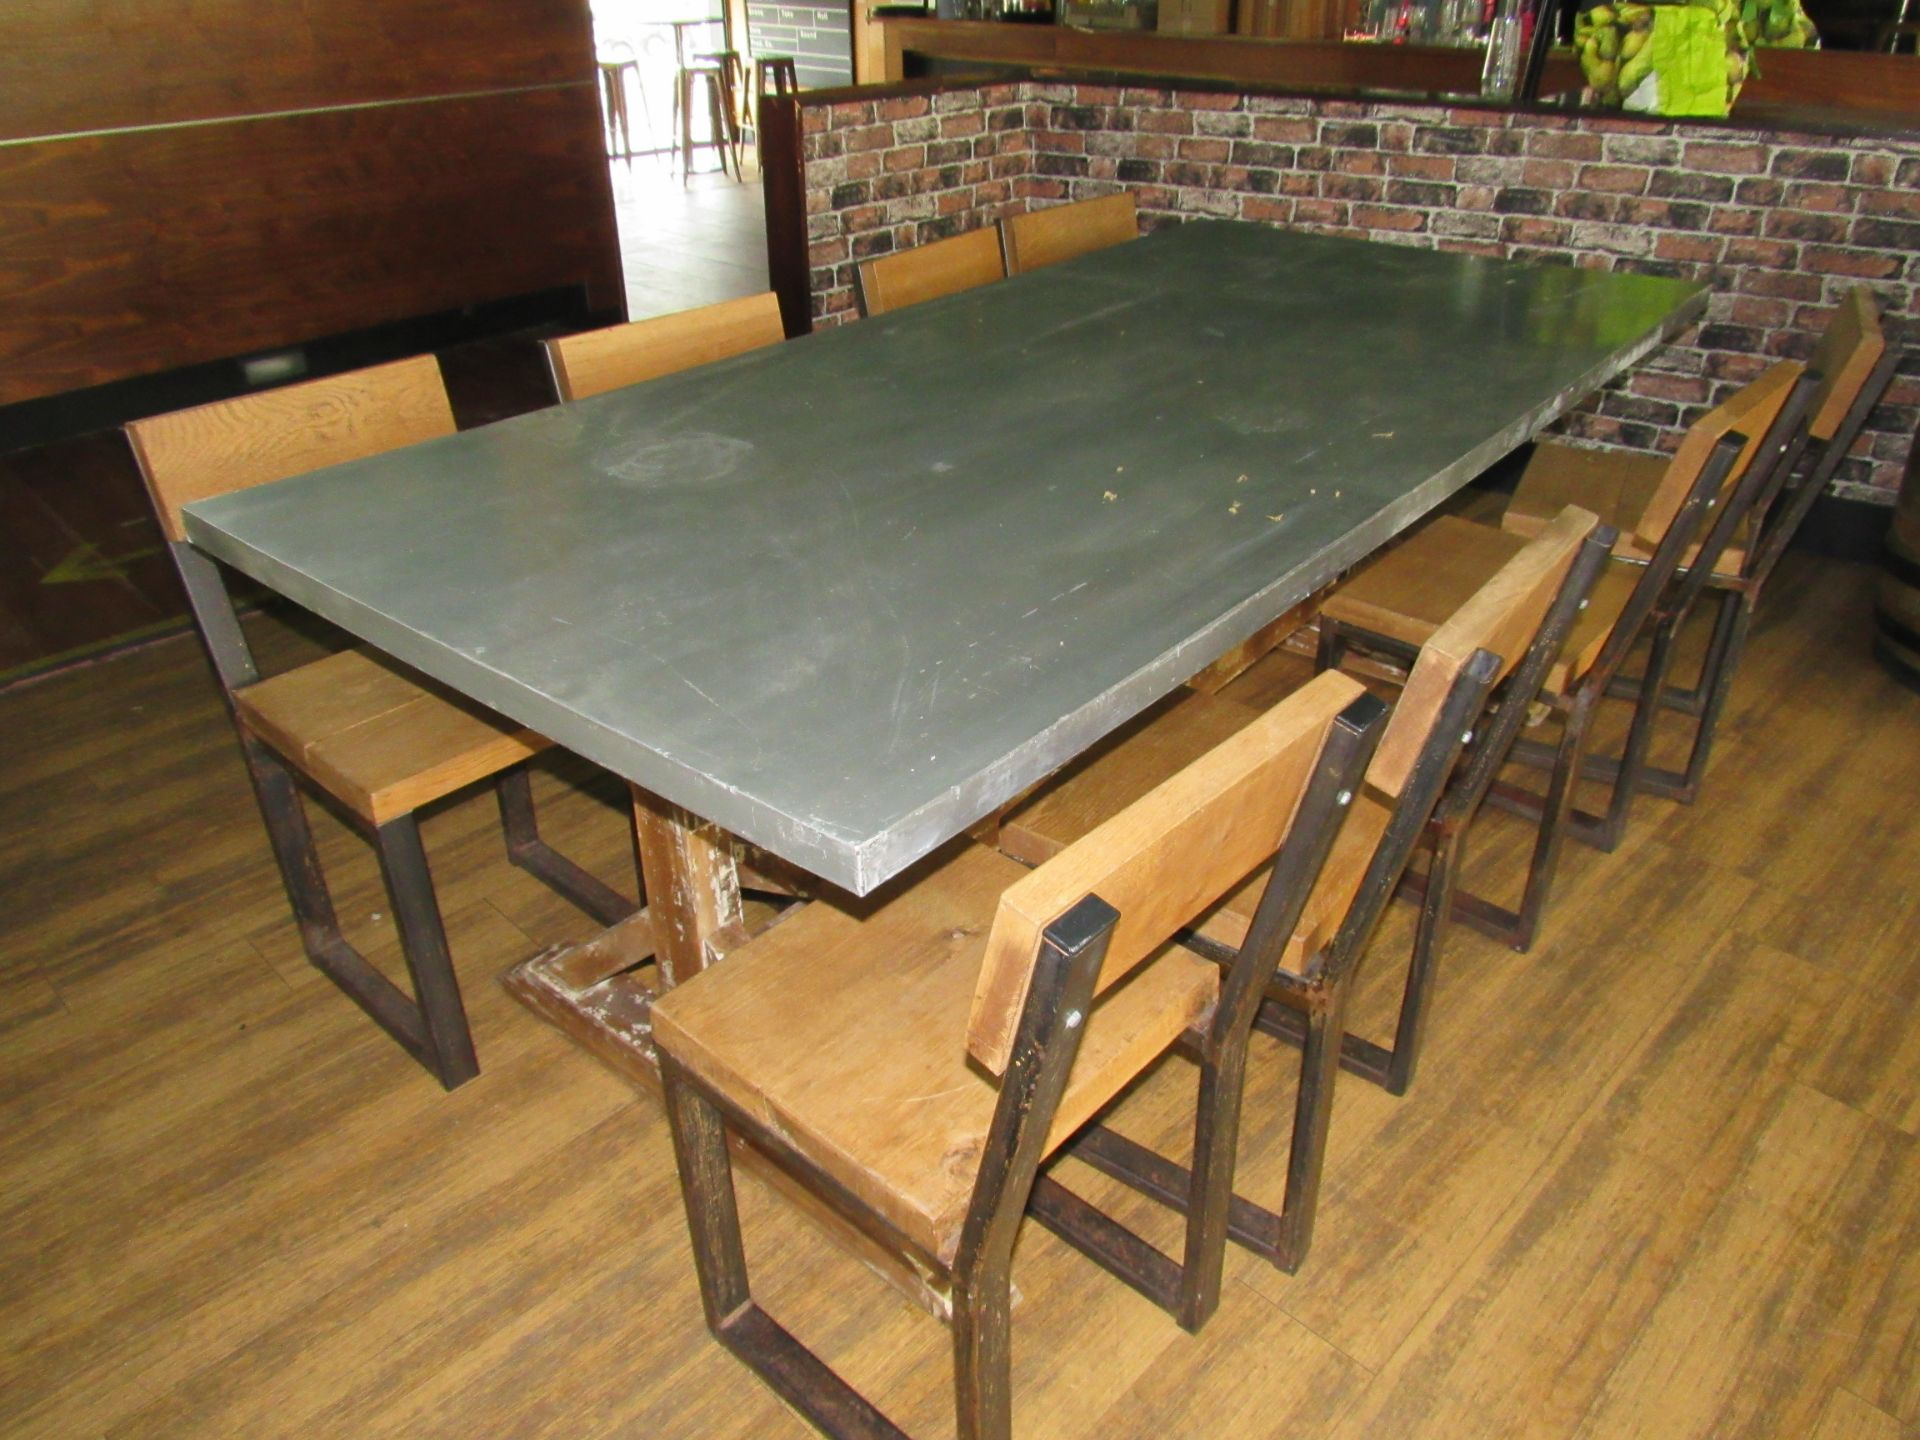 Chic 8 Person Table with 8 Chairs - Image 2 of 6